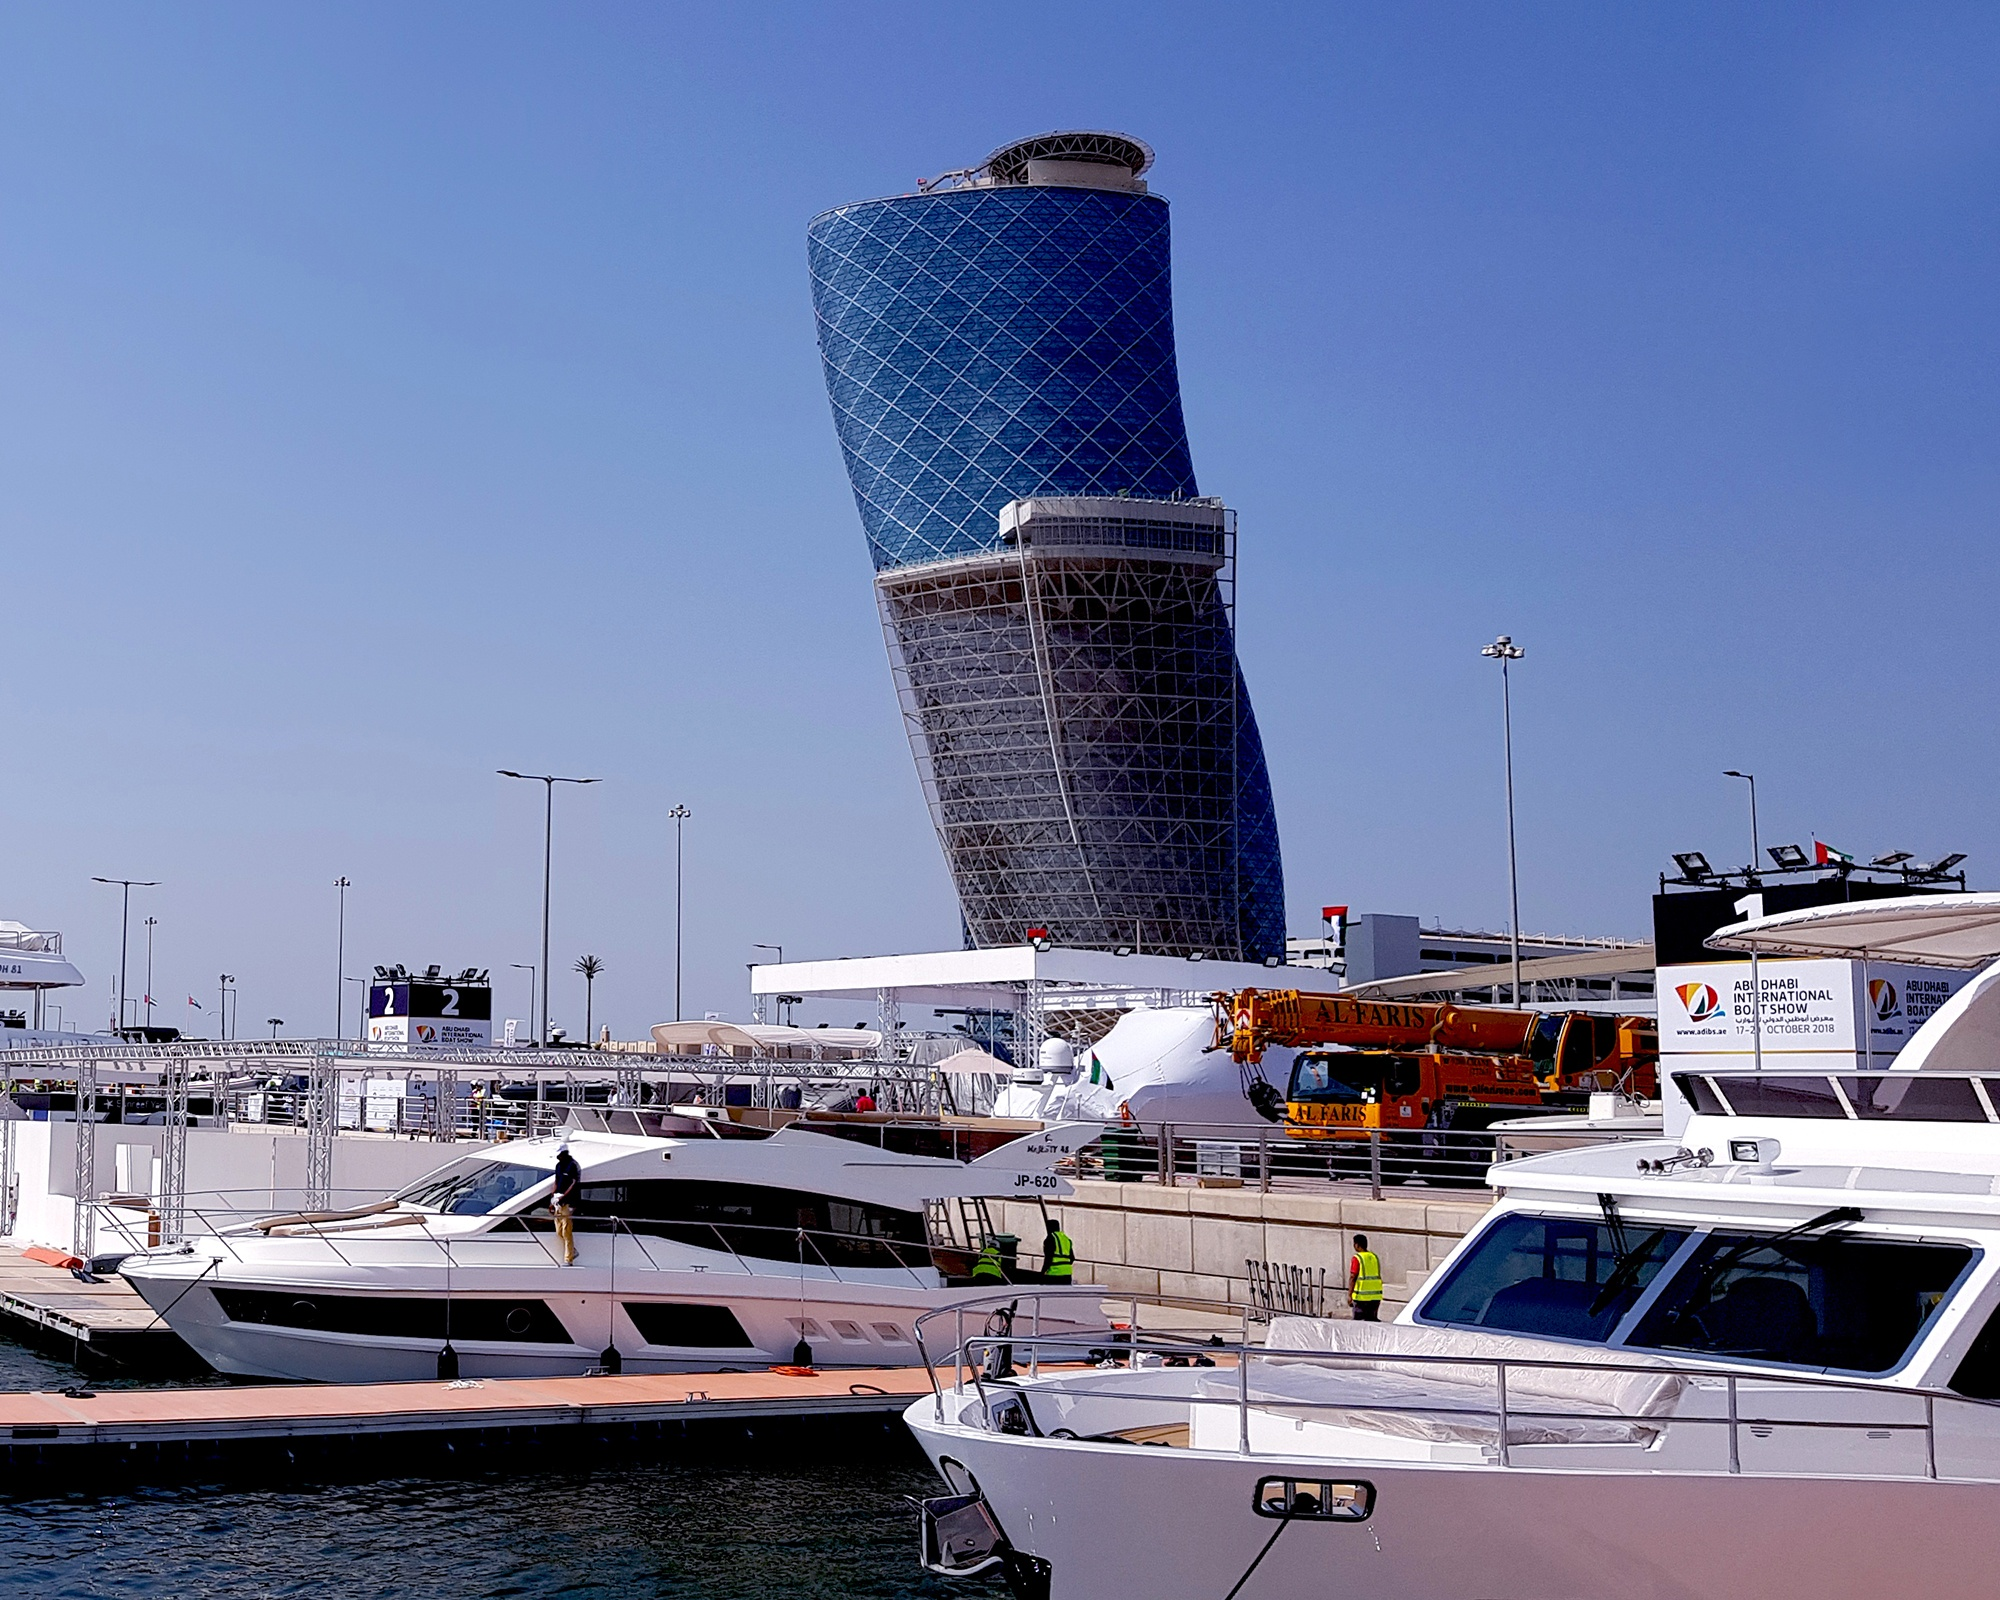 Visit Gulf Craft's water stand OW-94 at the Abu Dhabi Boat Show